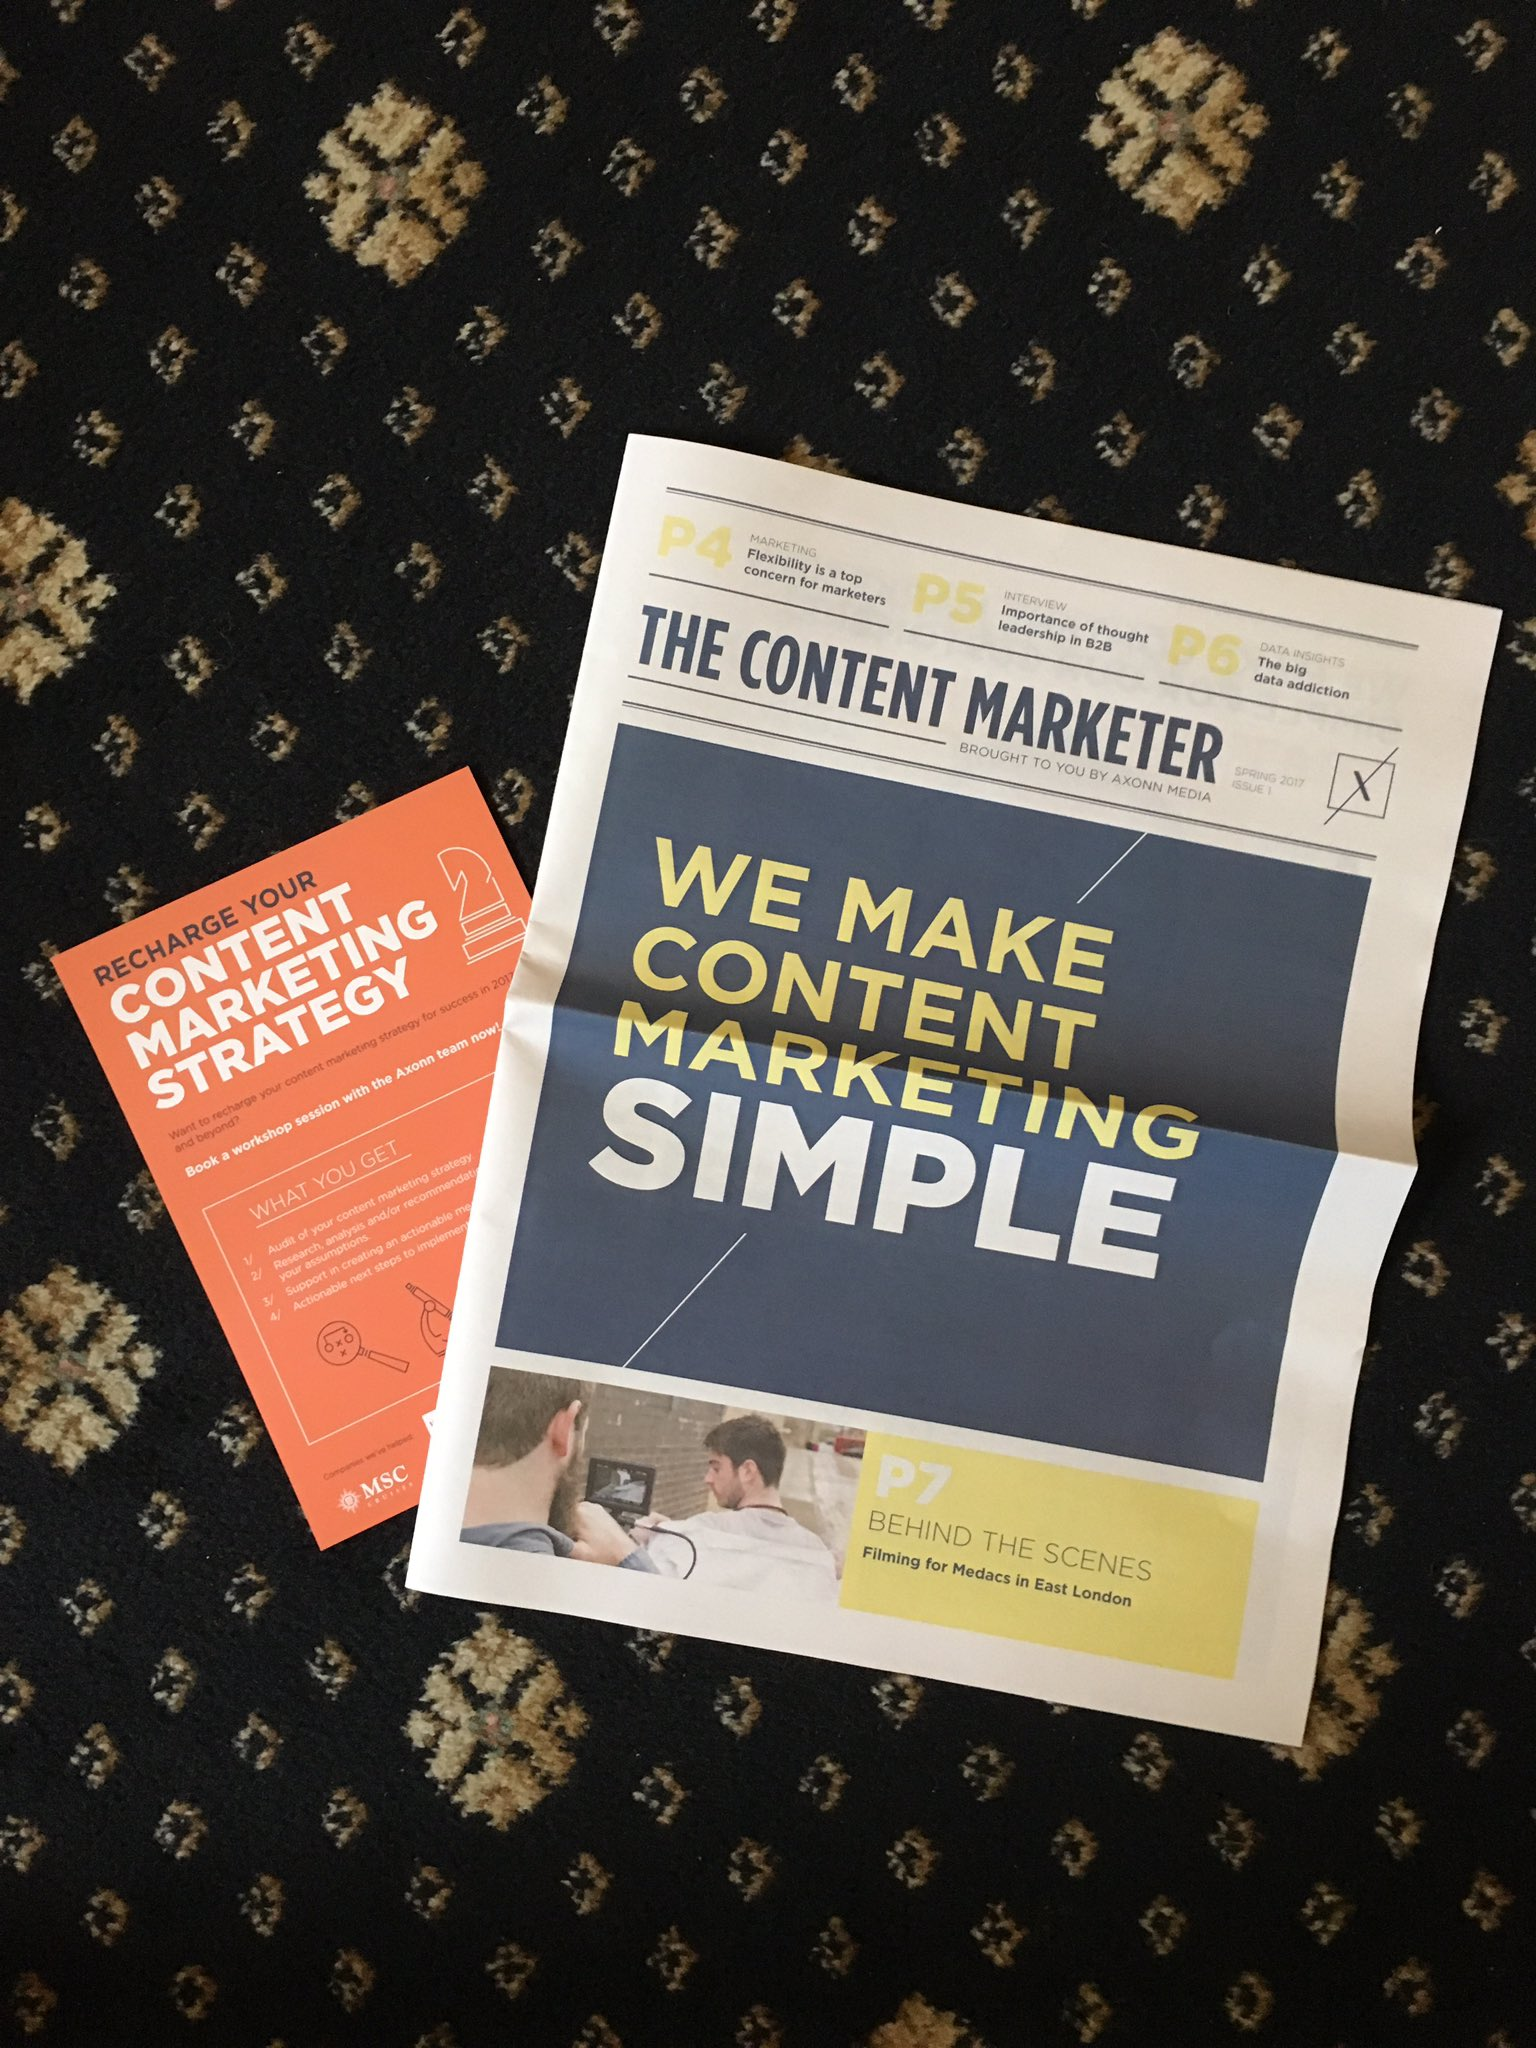 Extra! Extra! Read all about it- @AxonnMedia is making #contentmarketing simple! https://t.co/8FjVUDd4ww